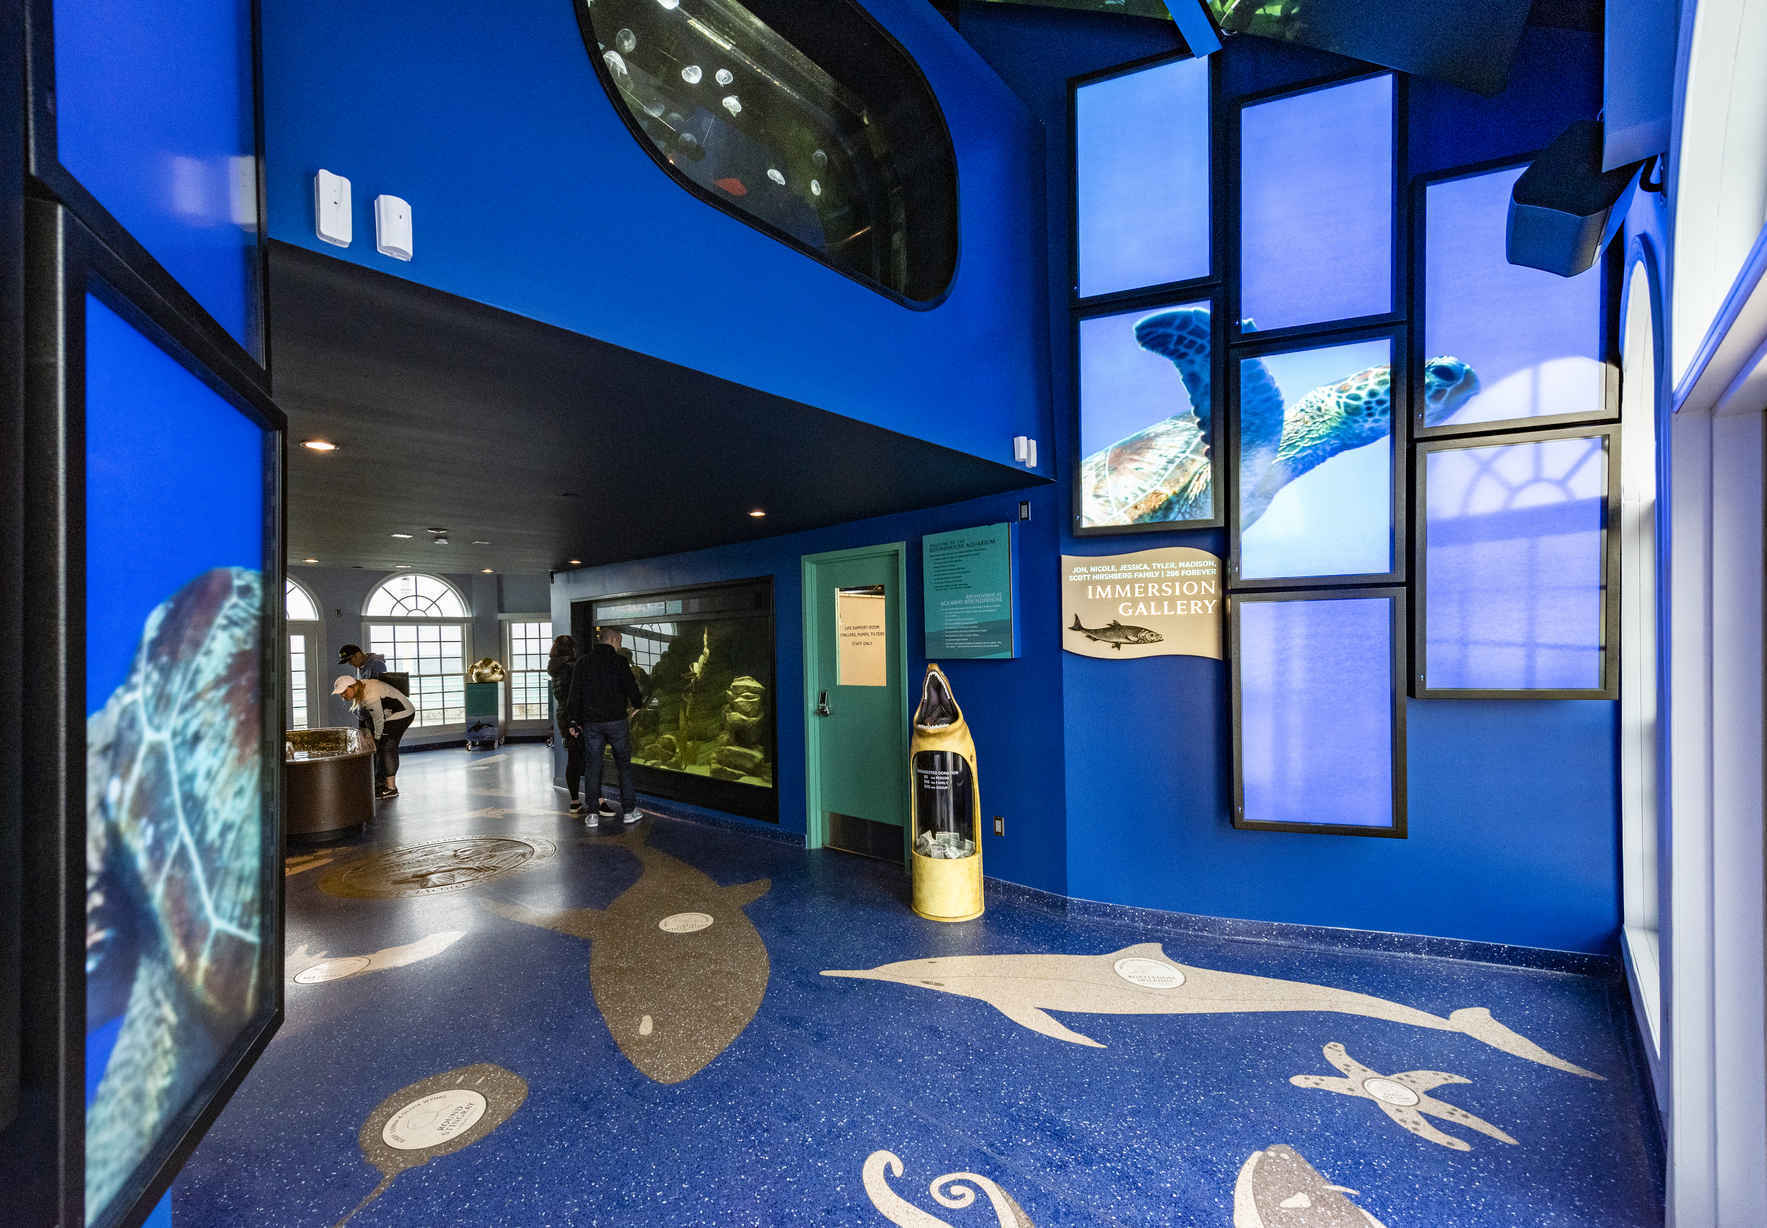 July 1 - Reserve your free entry to the Roundhouse Aquarium image